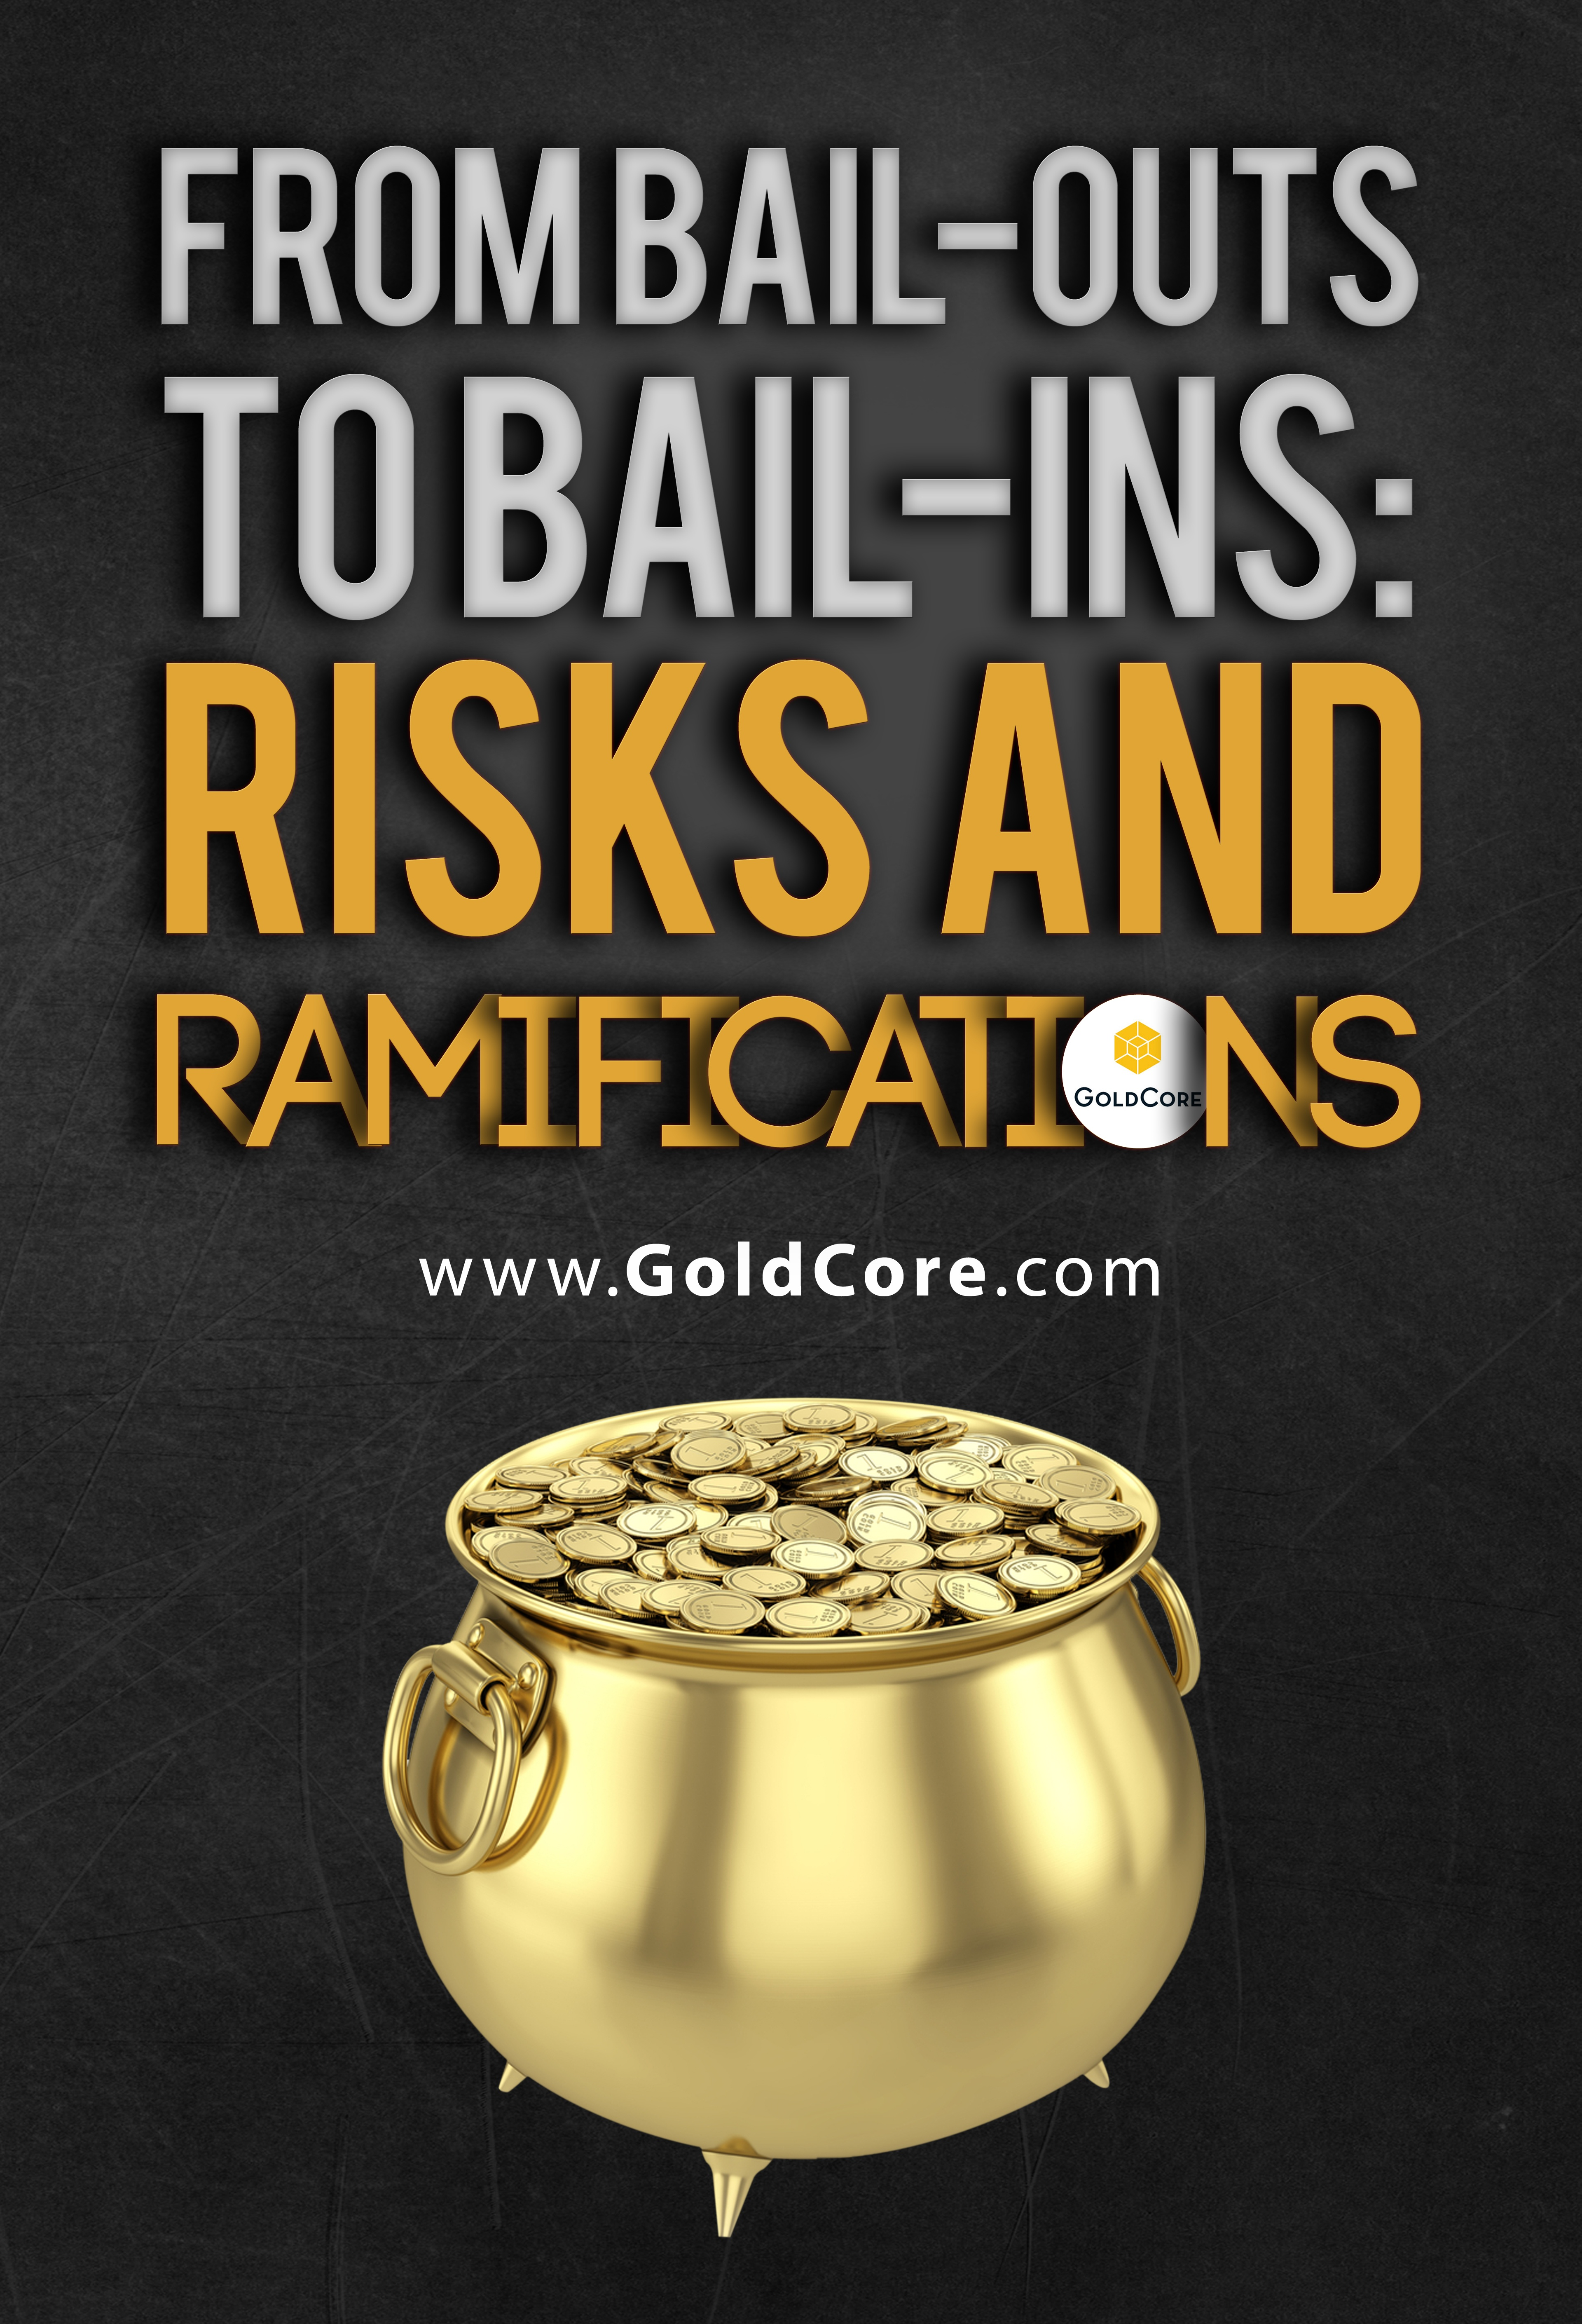 From_Bail_Outs_to_Bail_Ins_Risks_and_Ramifications_-_Copy.jpg